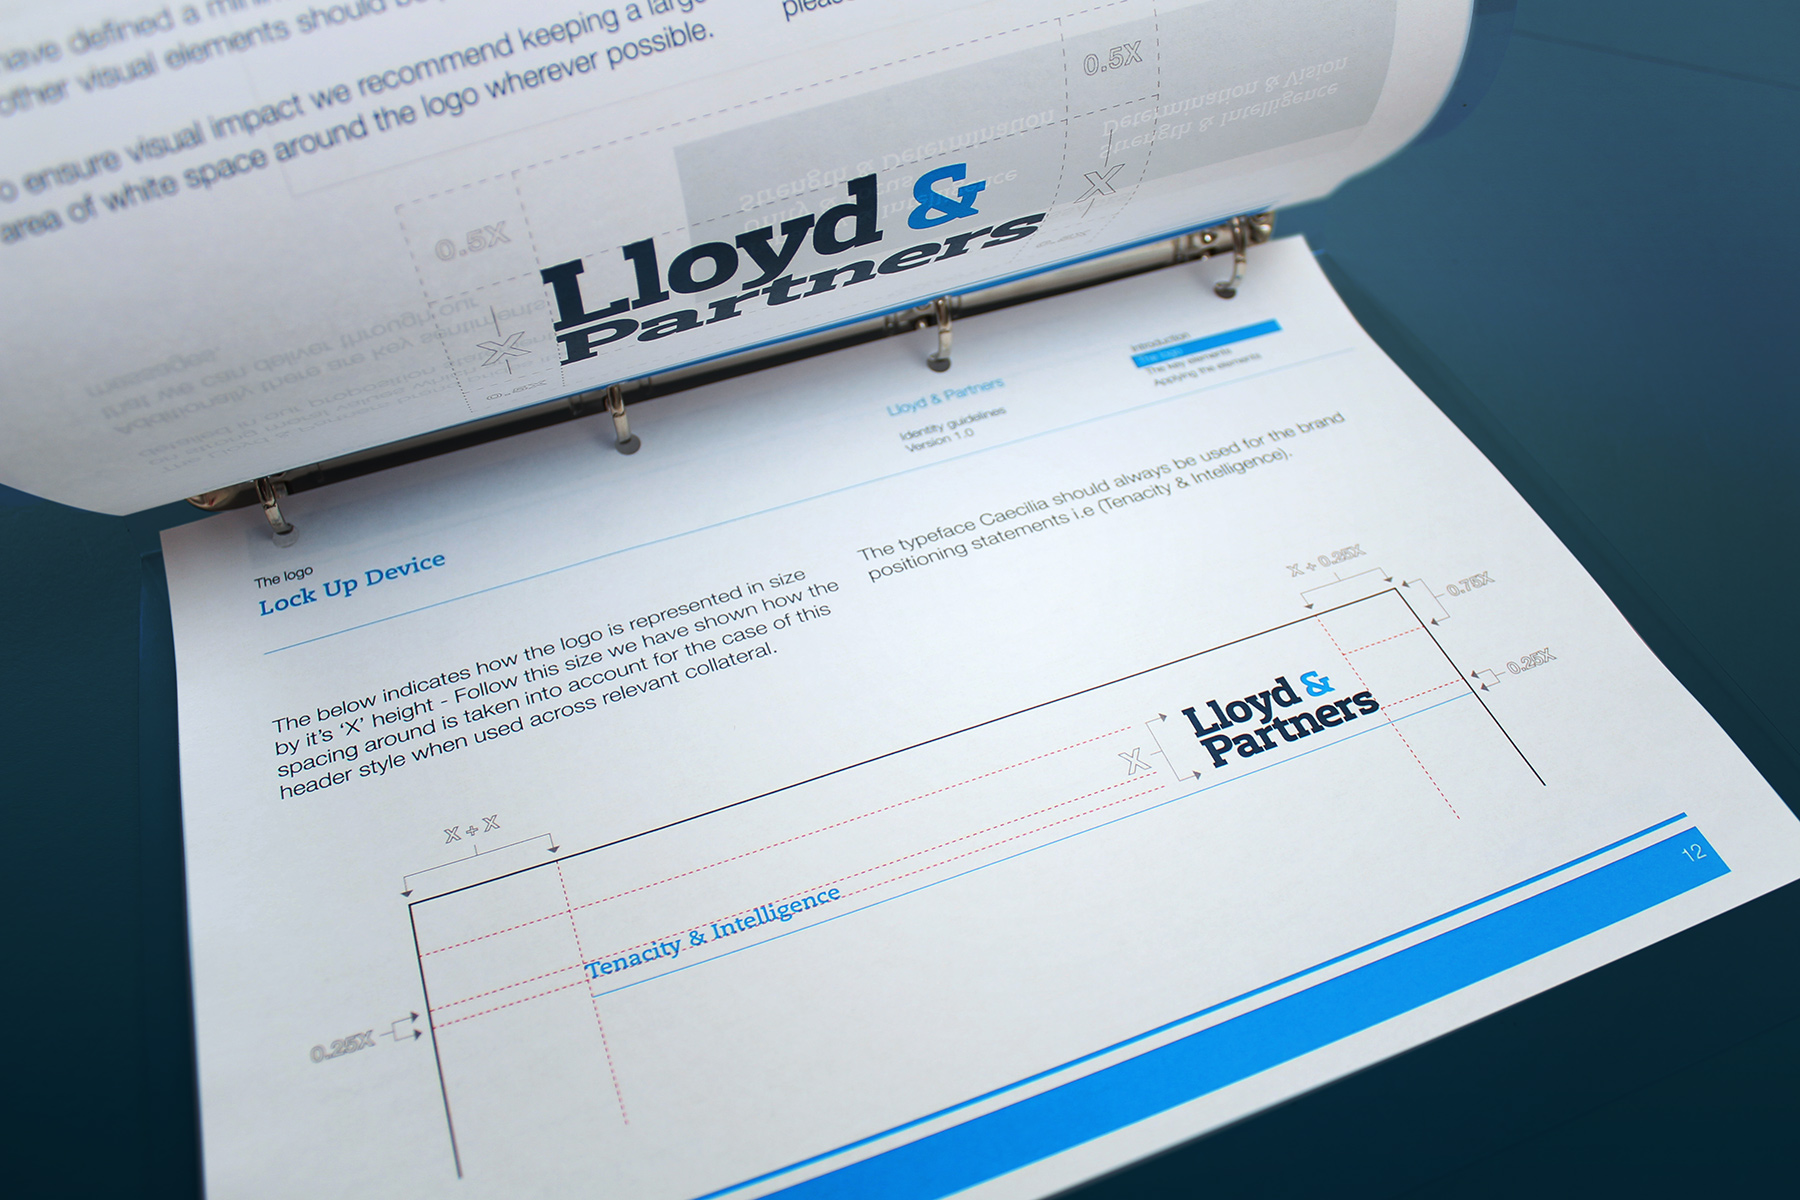 In order to keep control of the brand identity and make sure all applications are consistent, a detailed brand guidelines was produced for all Lloyd & Partners staff, as well as external agencies.